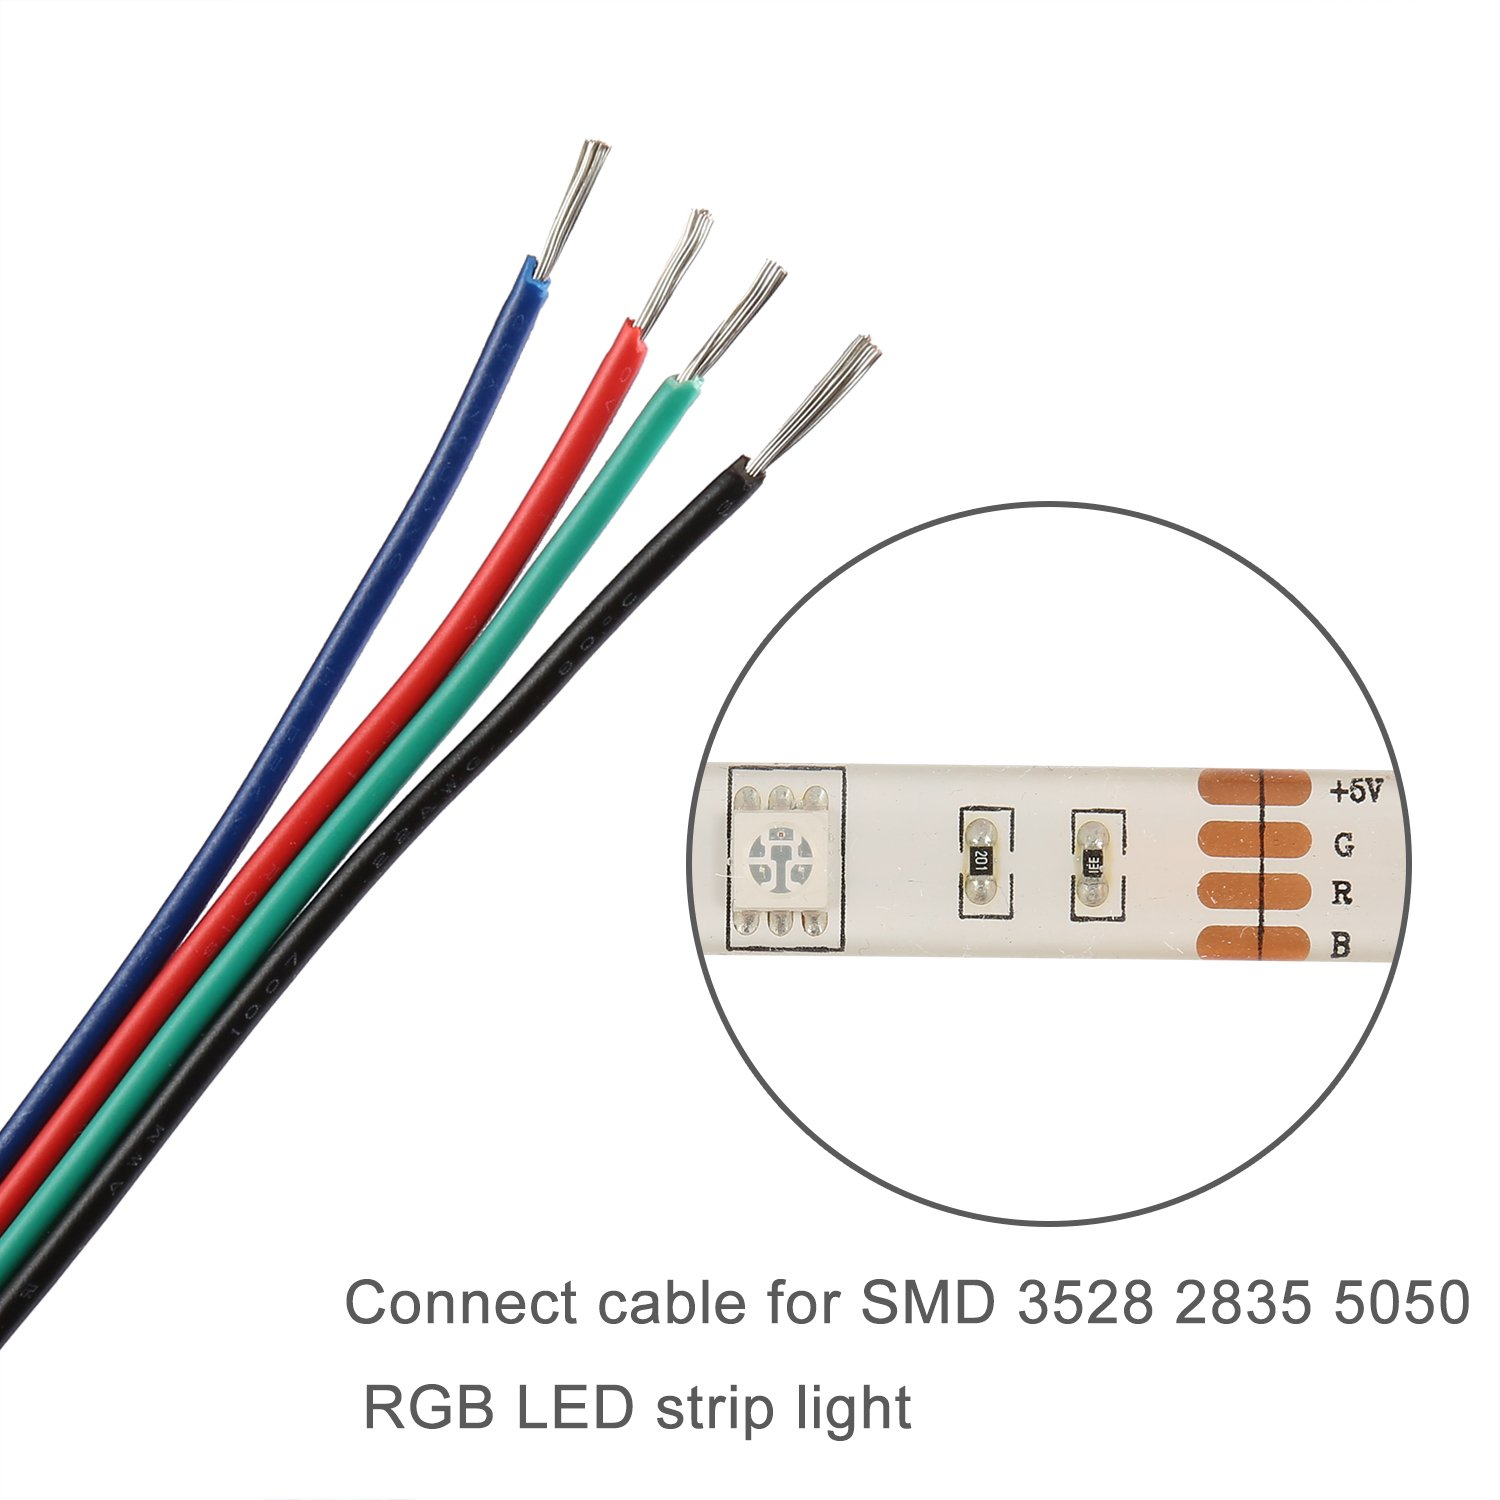 Youkoyi 656ft 20m 4 Pin Led Strip Extension Cable Wire Cord Line Wiring Strips For Rgb 5050 3528 Ul1007 22 Awg Color